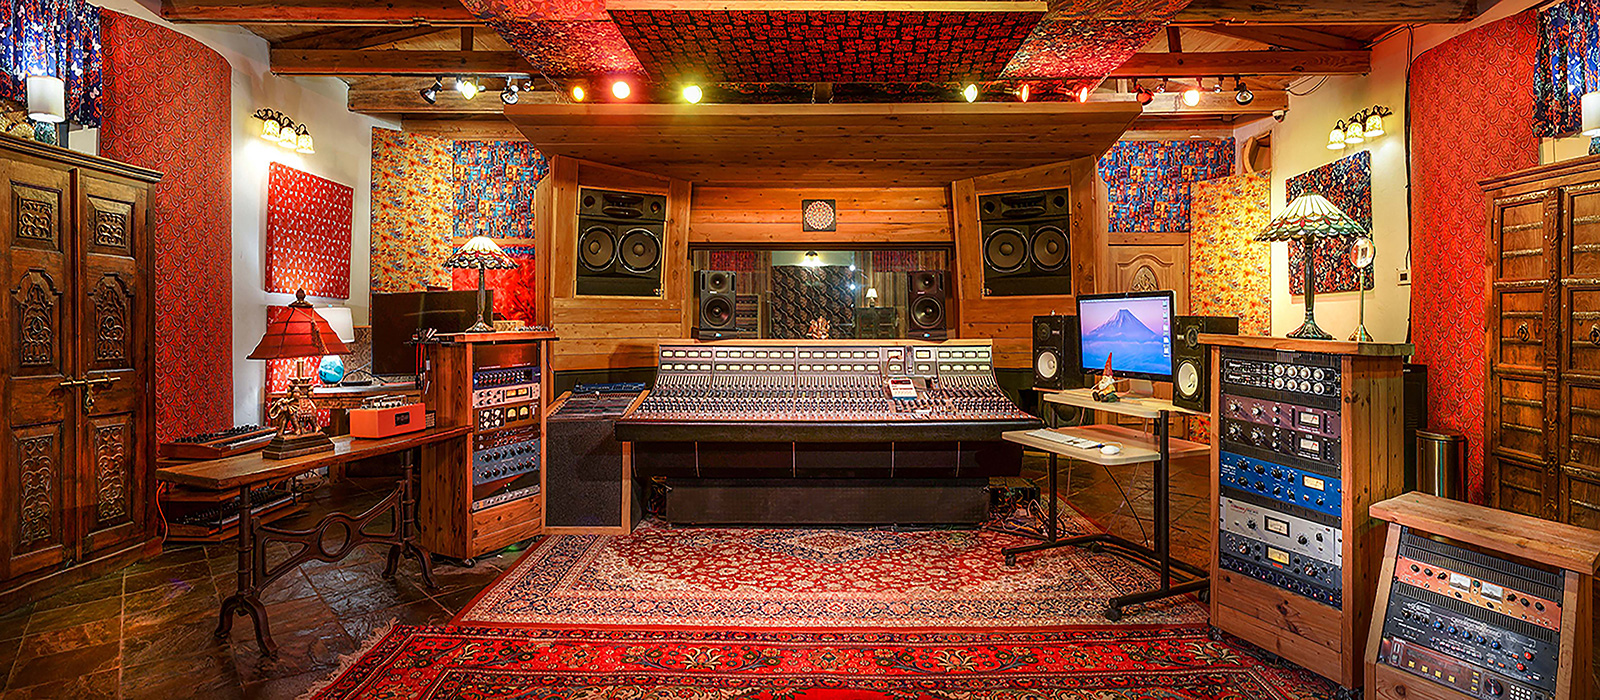 1600x700-studio-adobe-contolroom-centerfar